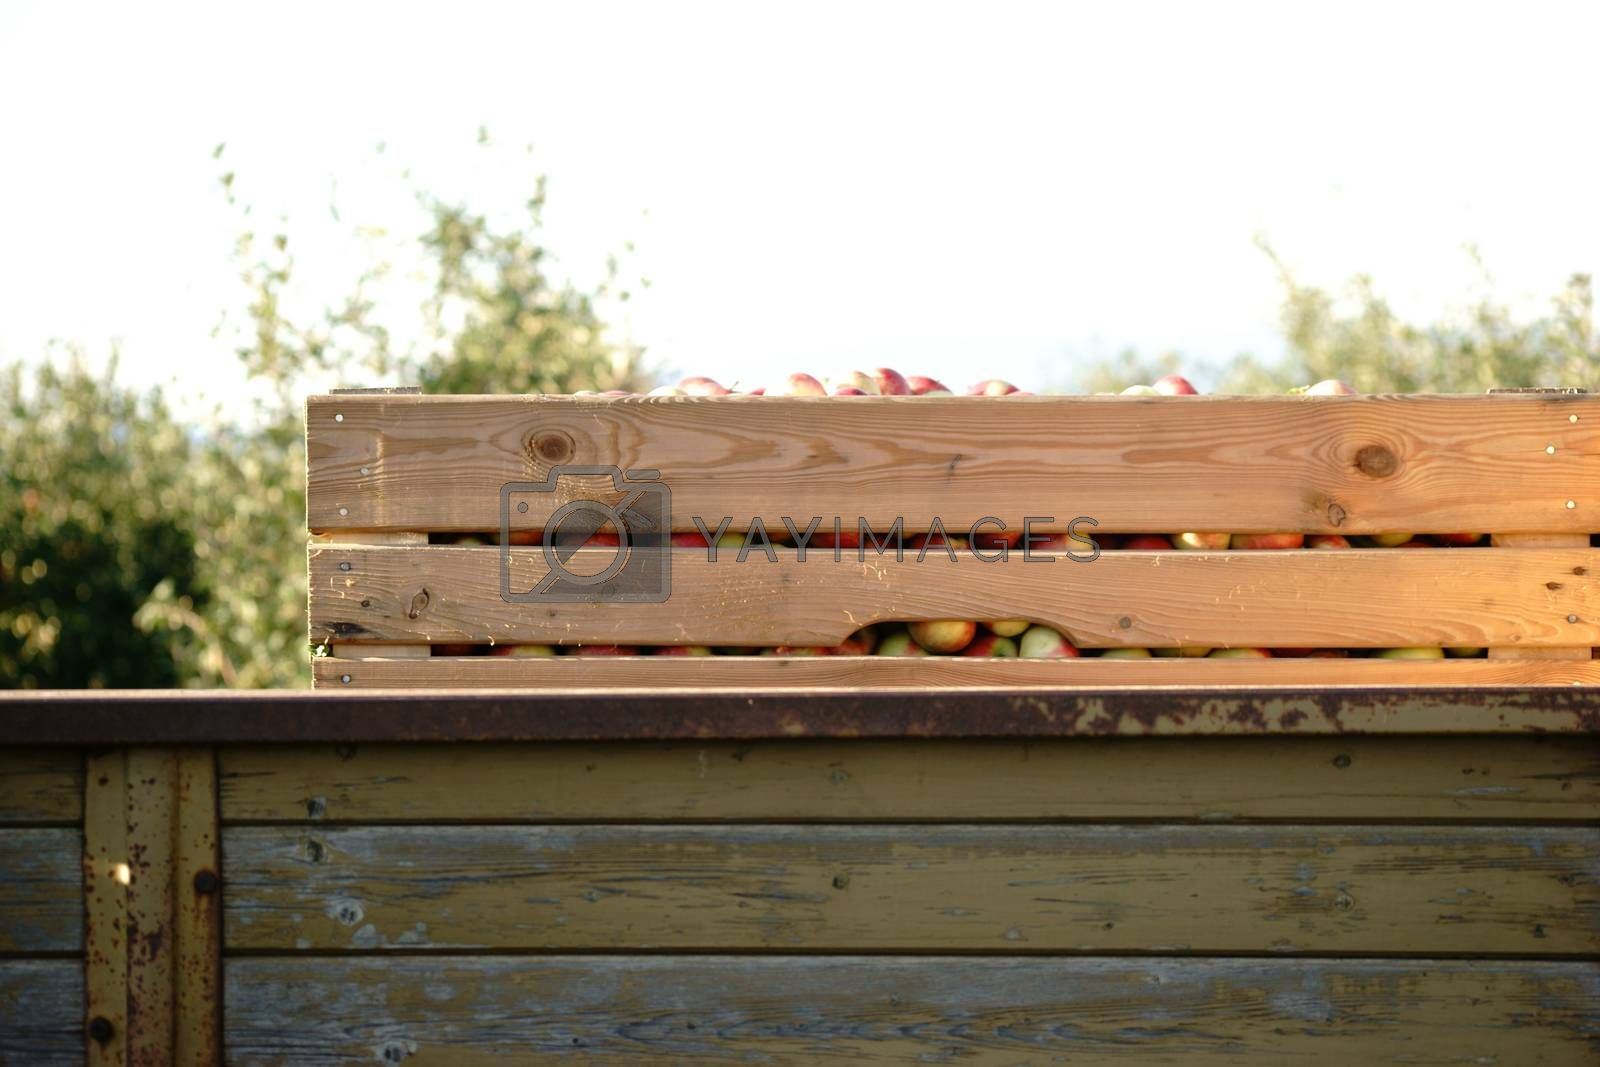 The side view of a box of freshly picked apples on a trailer.